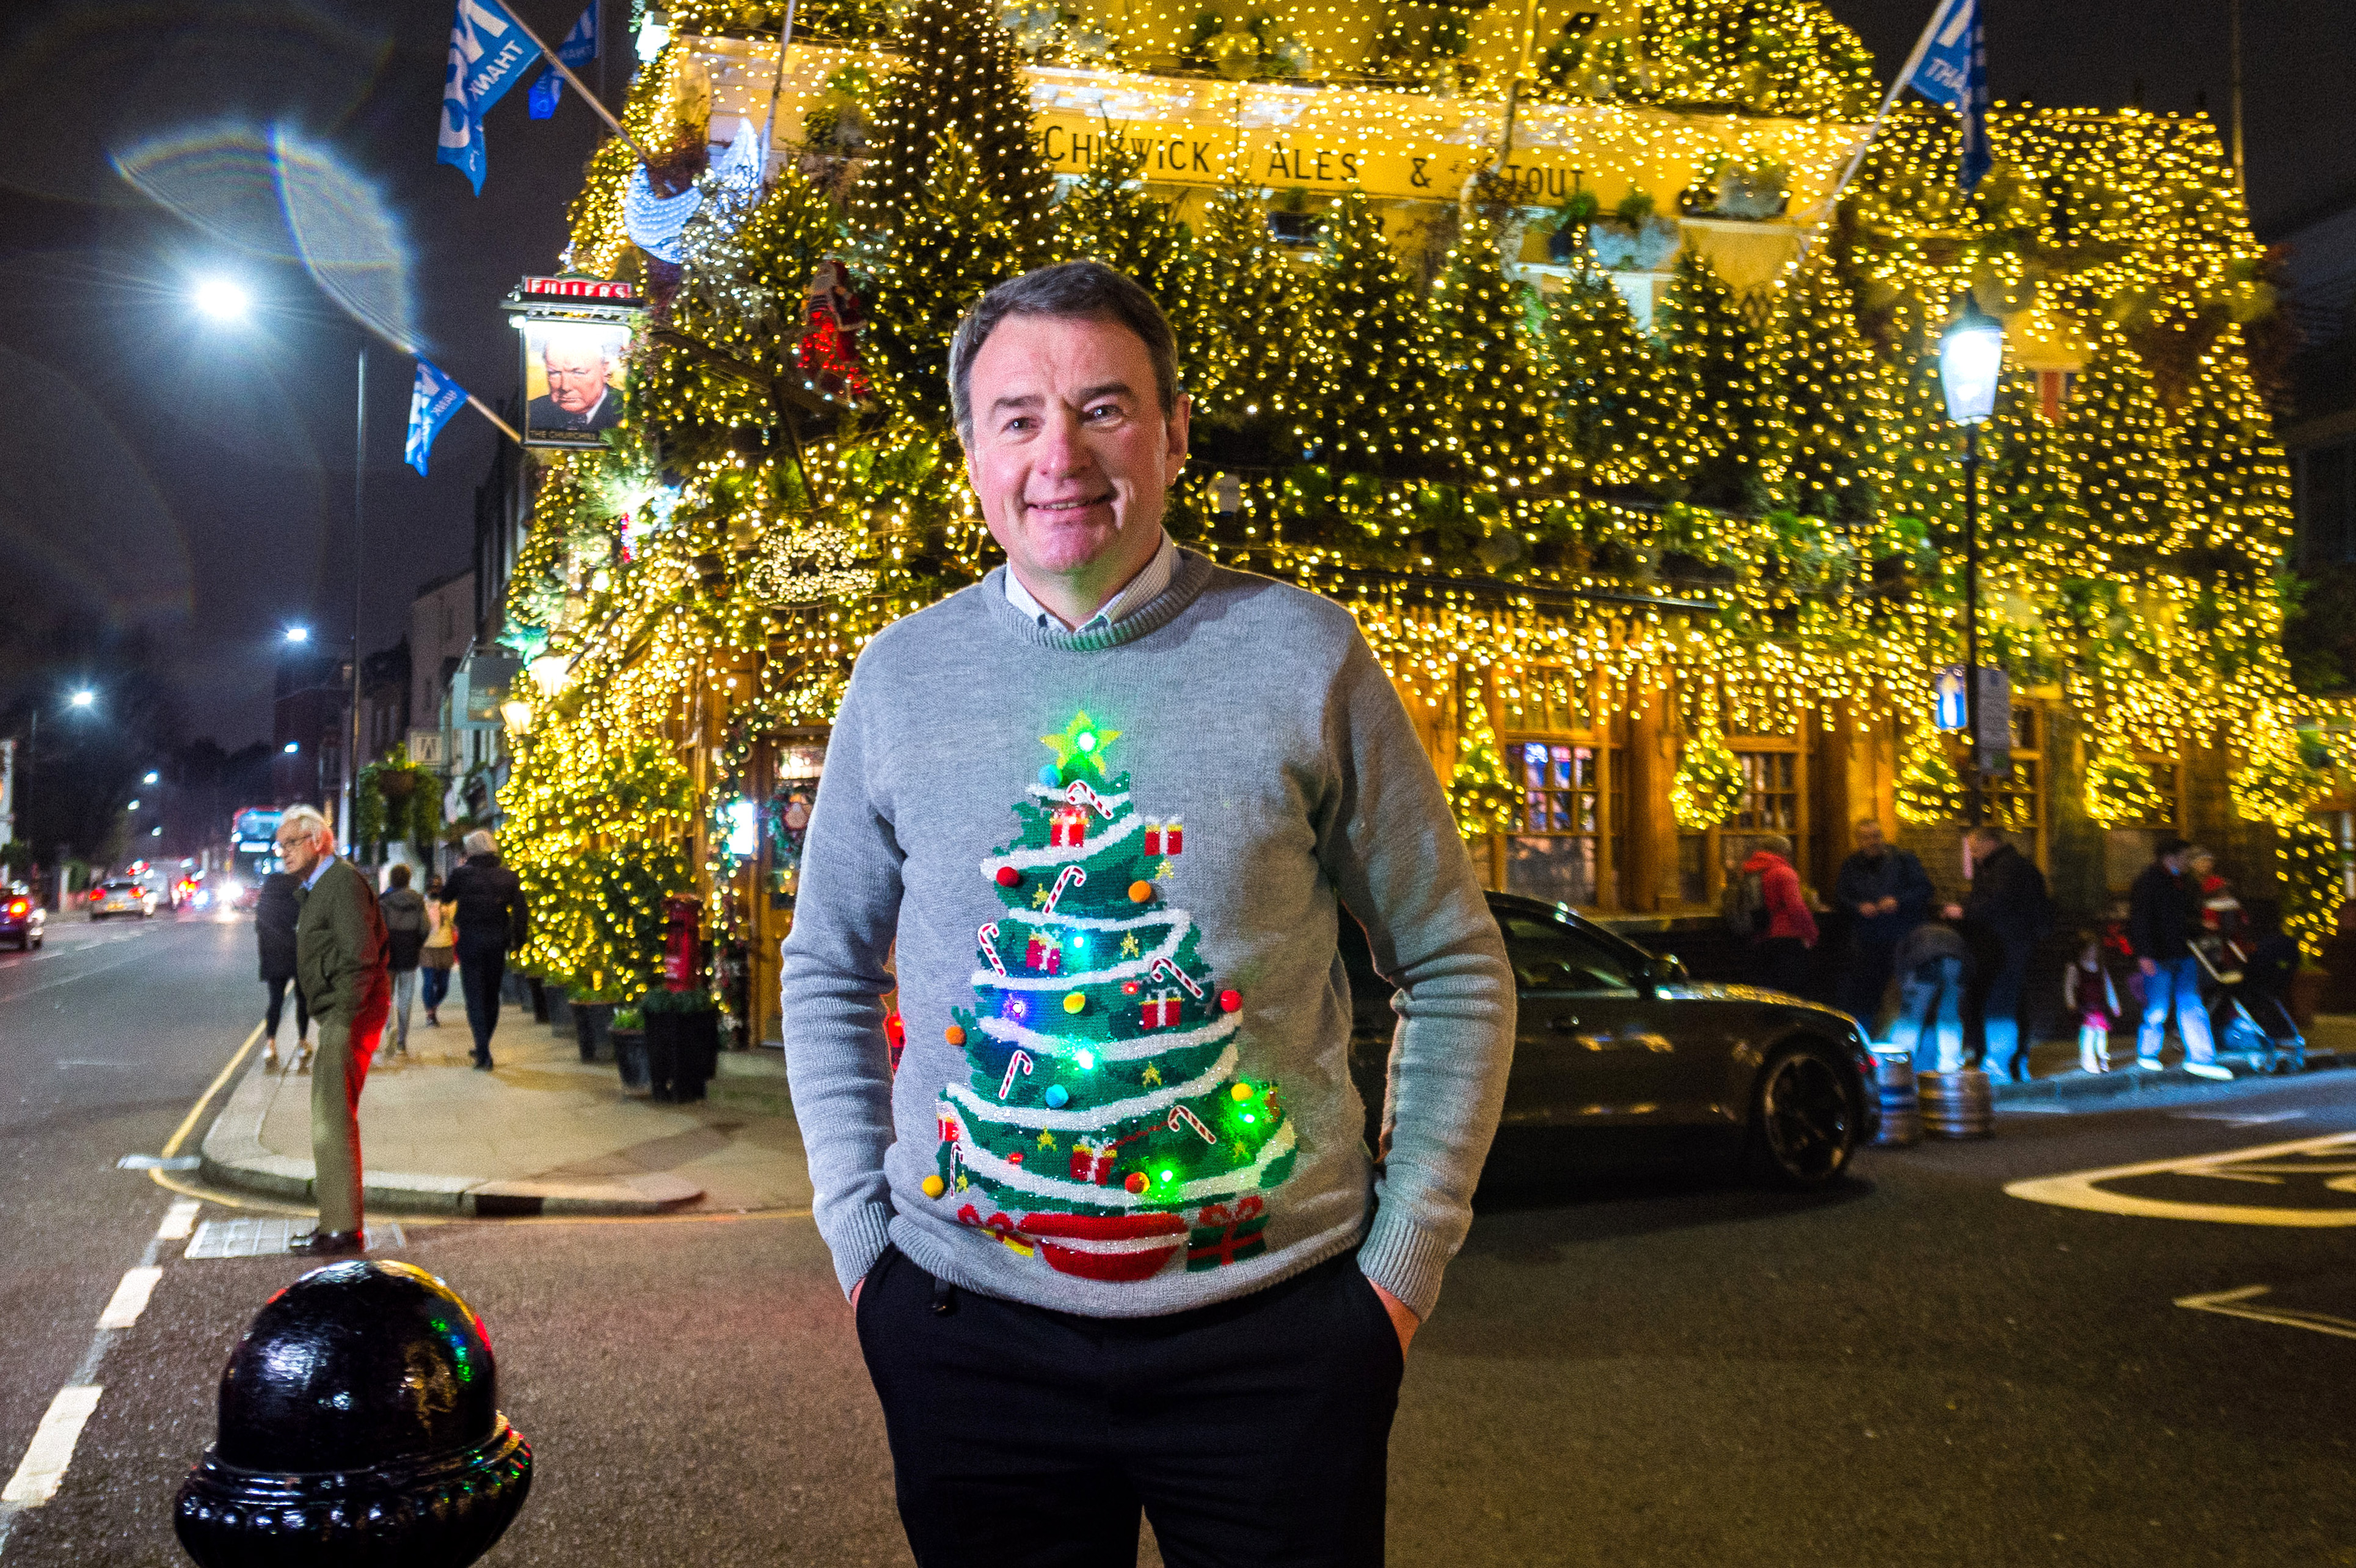 LONDON, ENGLAND - DECEMBER 02:  General Manager, James Keogh of The Churchill Arms poses outside his pub after turning on their 2020 Christmas lights on December 2, 2020 in London, England. Many Christmas events have been cancelled this year due to the Coronavirus Pandemic but London is festooned with Christmas Lights across the capital.  (Photo by Joseph Okpako/Getty Images)